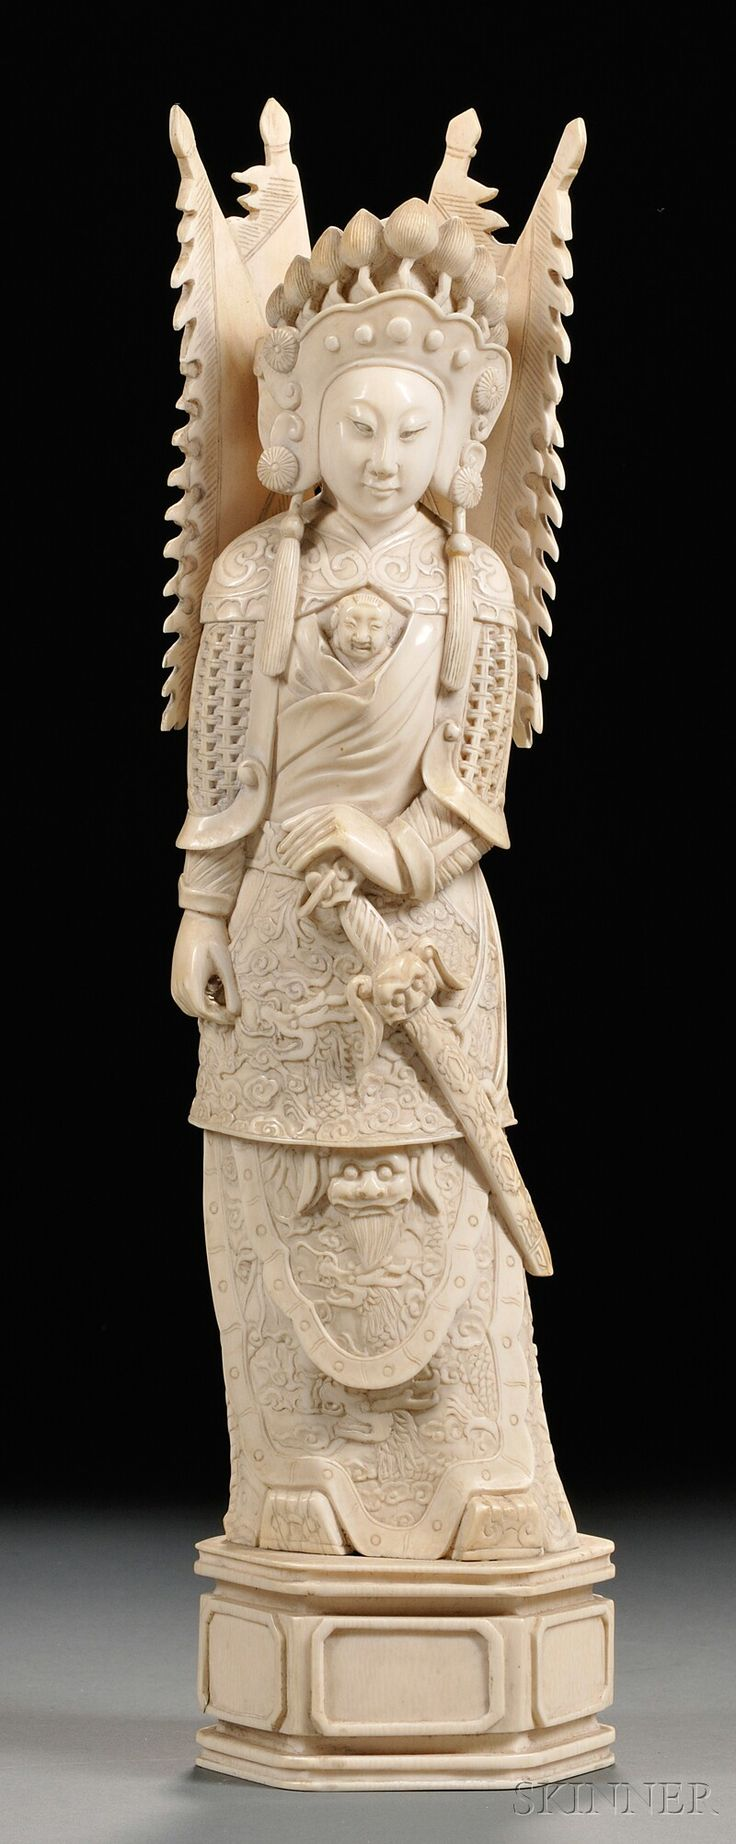 Ivory Carving China Tall Standing Figure Of A Warrior Holding A Sword And Dagger Carved